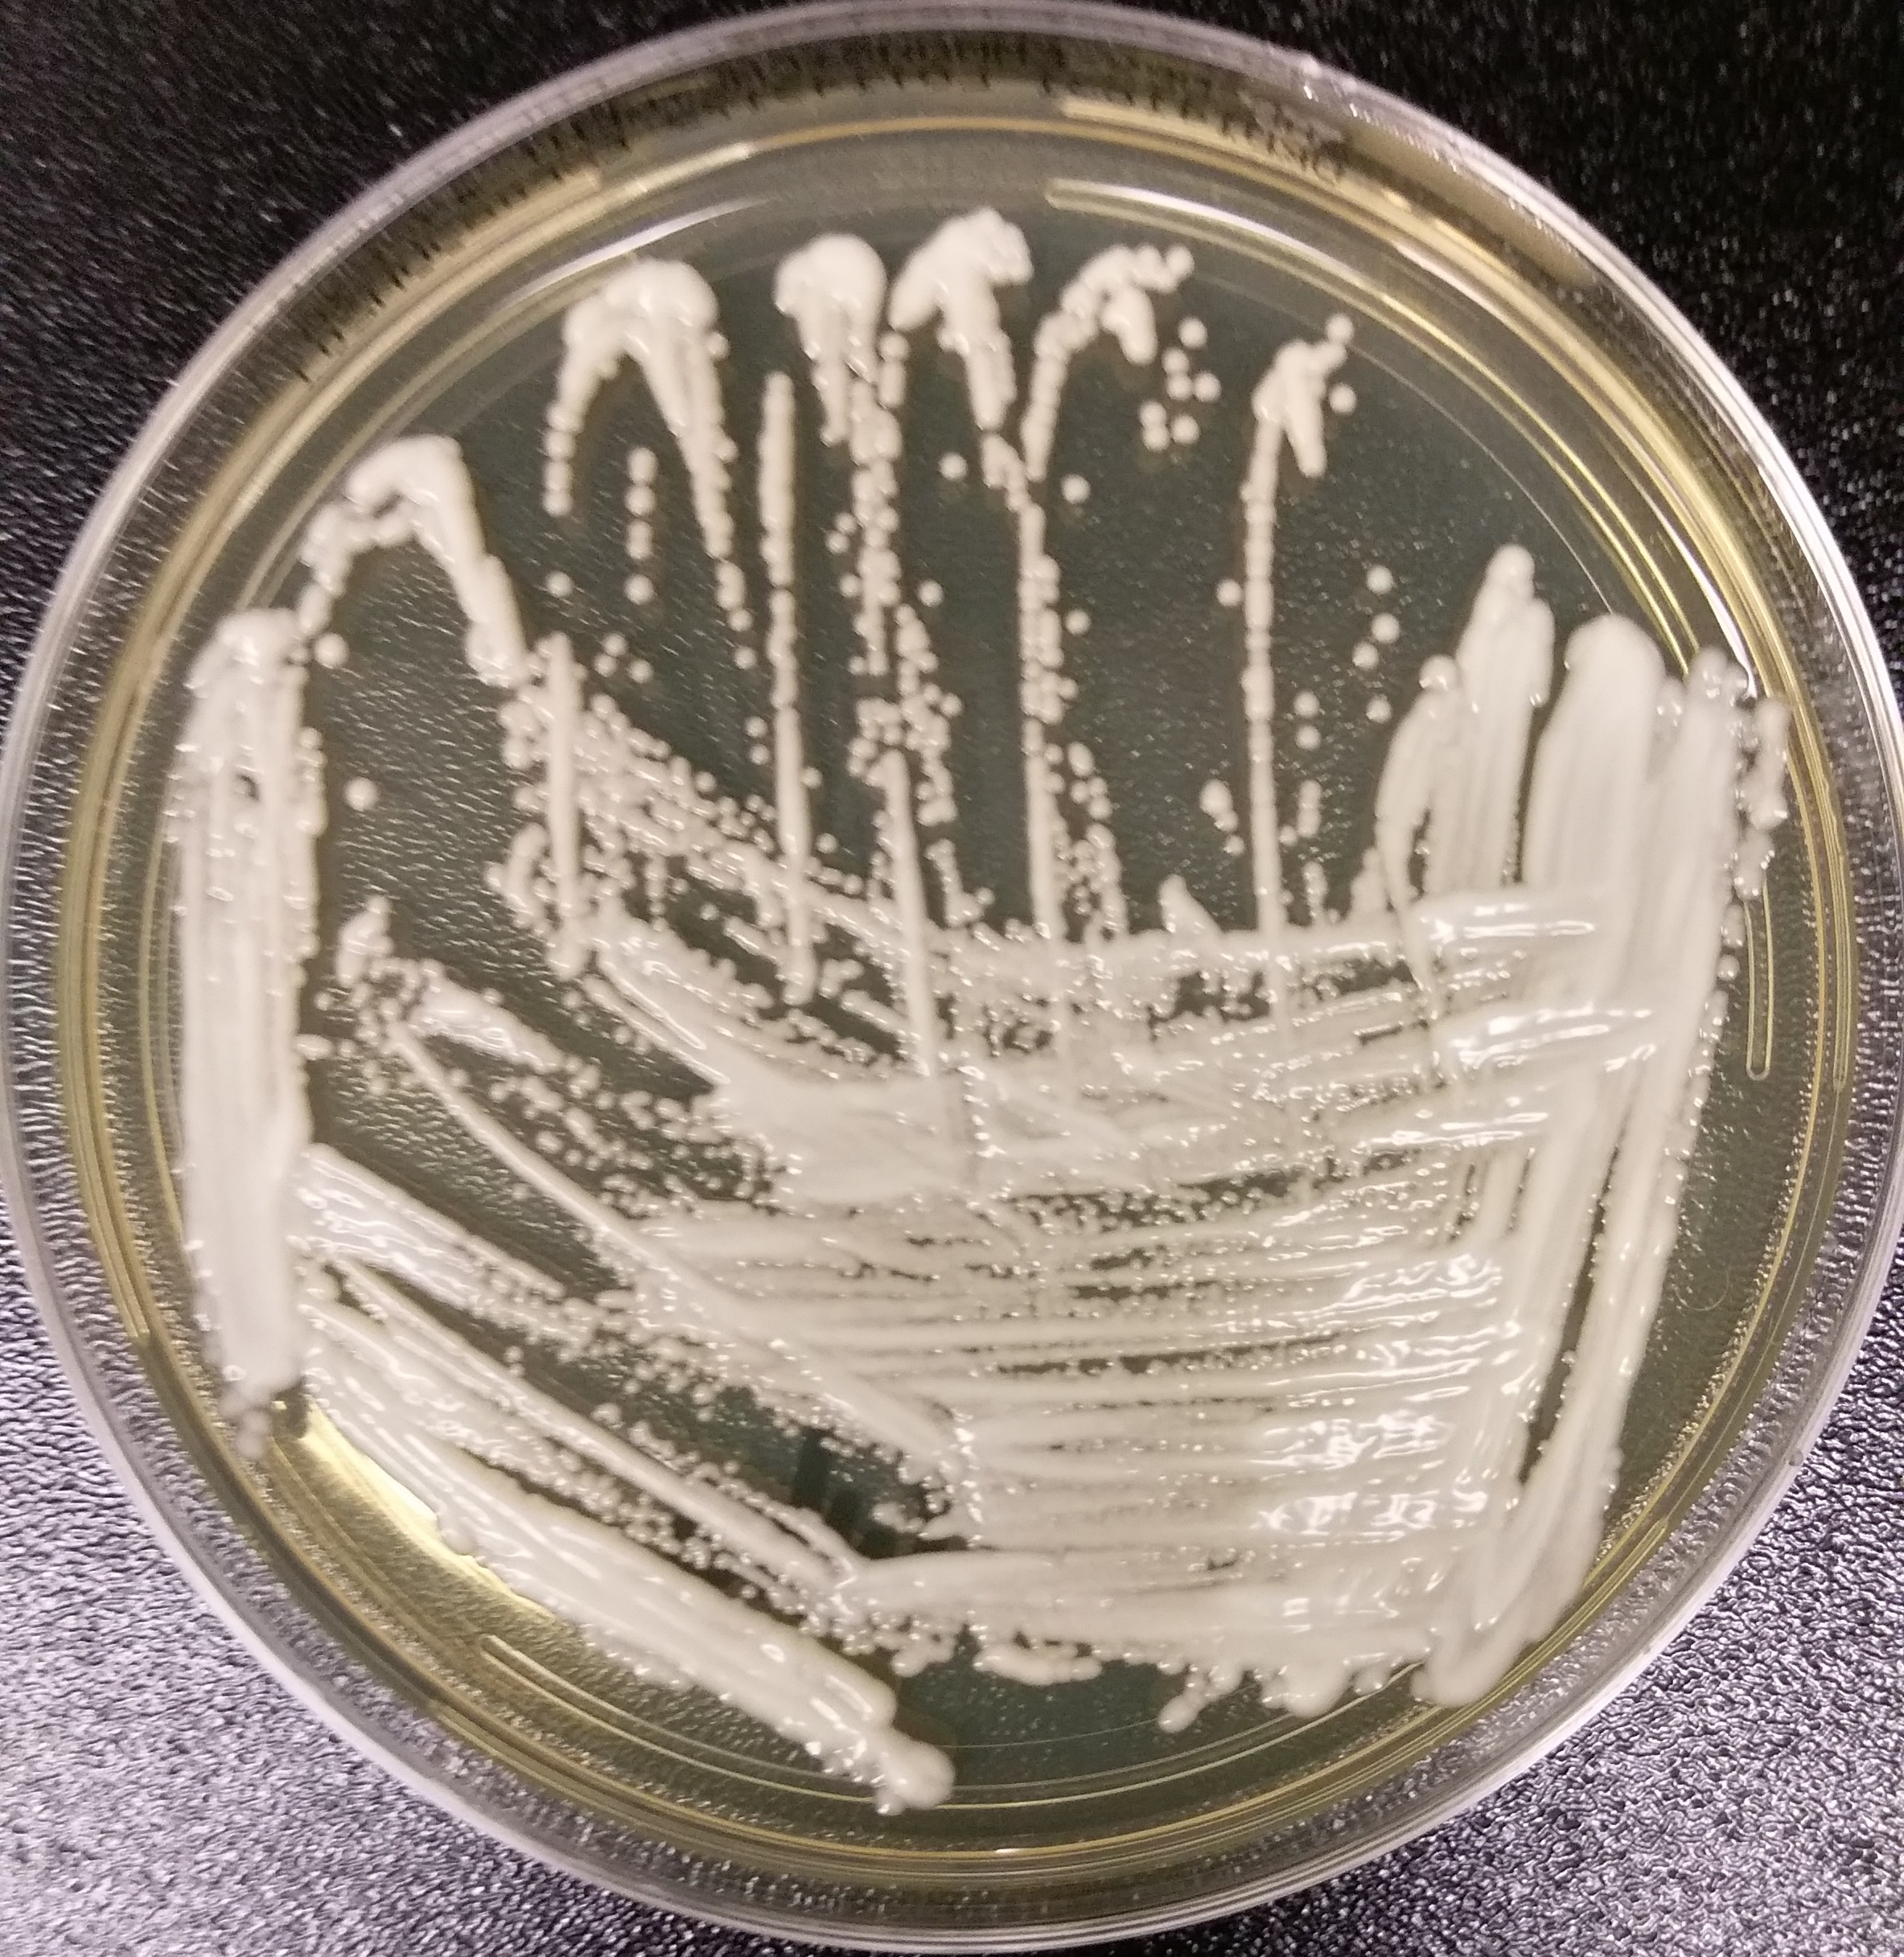 Australia: 1st known Candida auris case reported in Victoria - Outbreak News Today